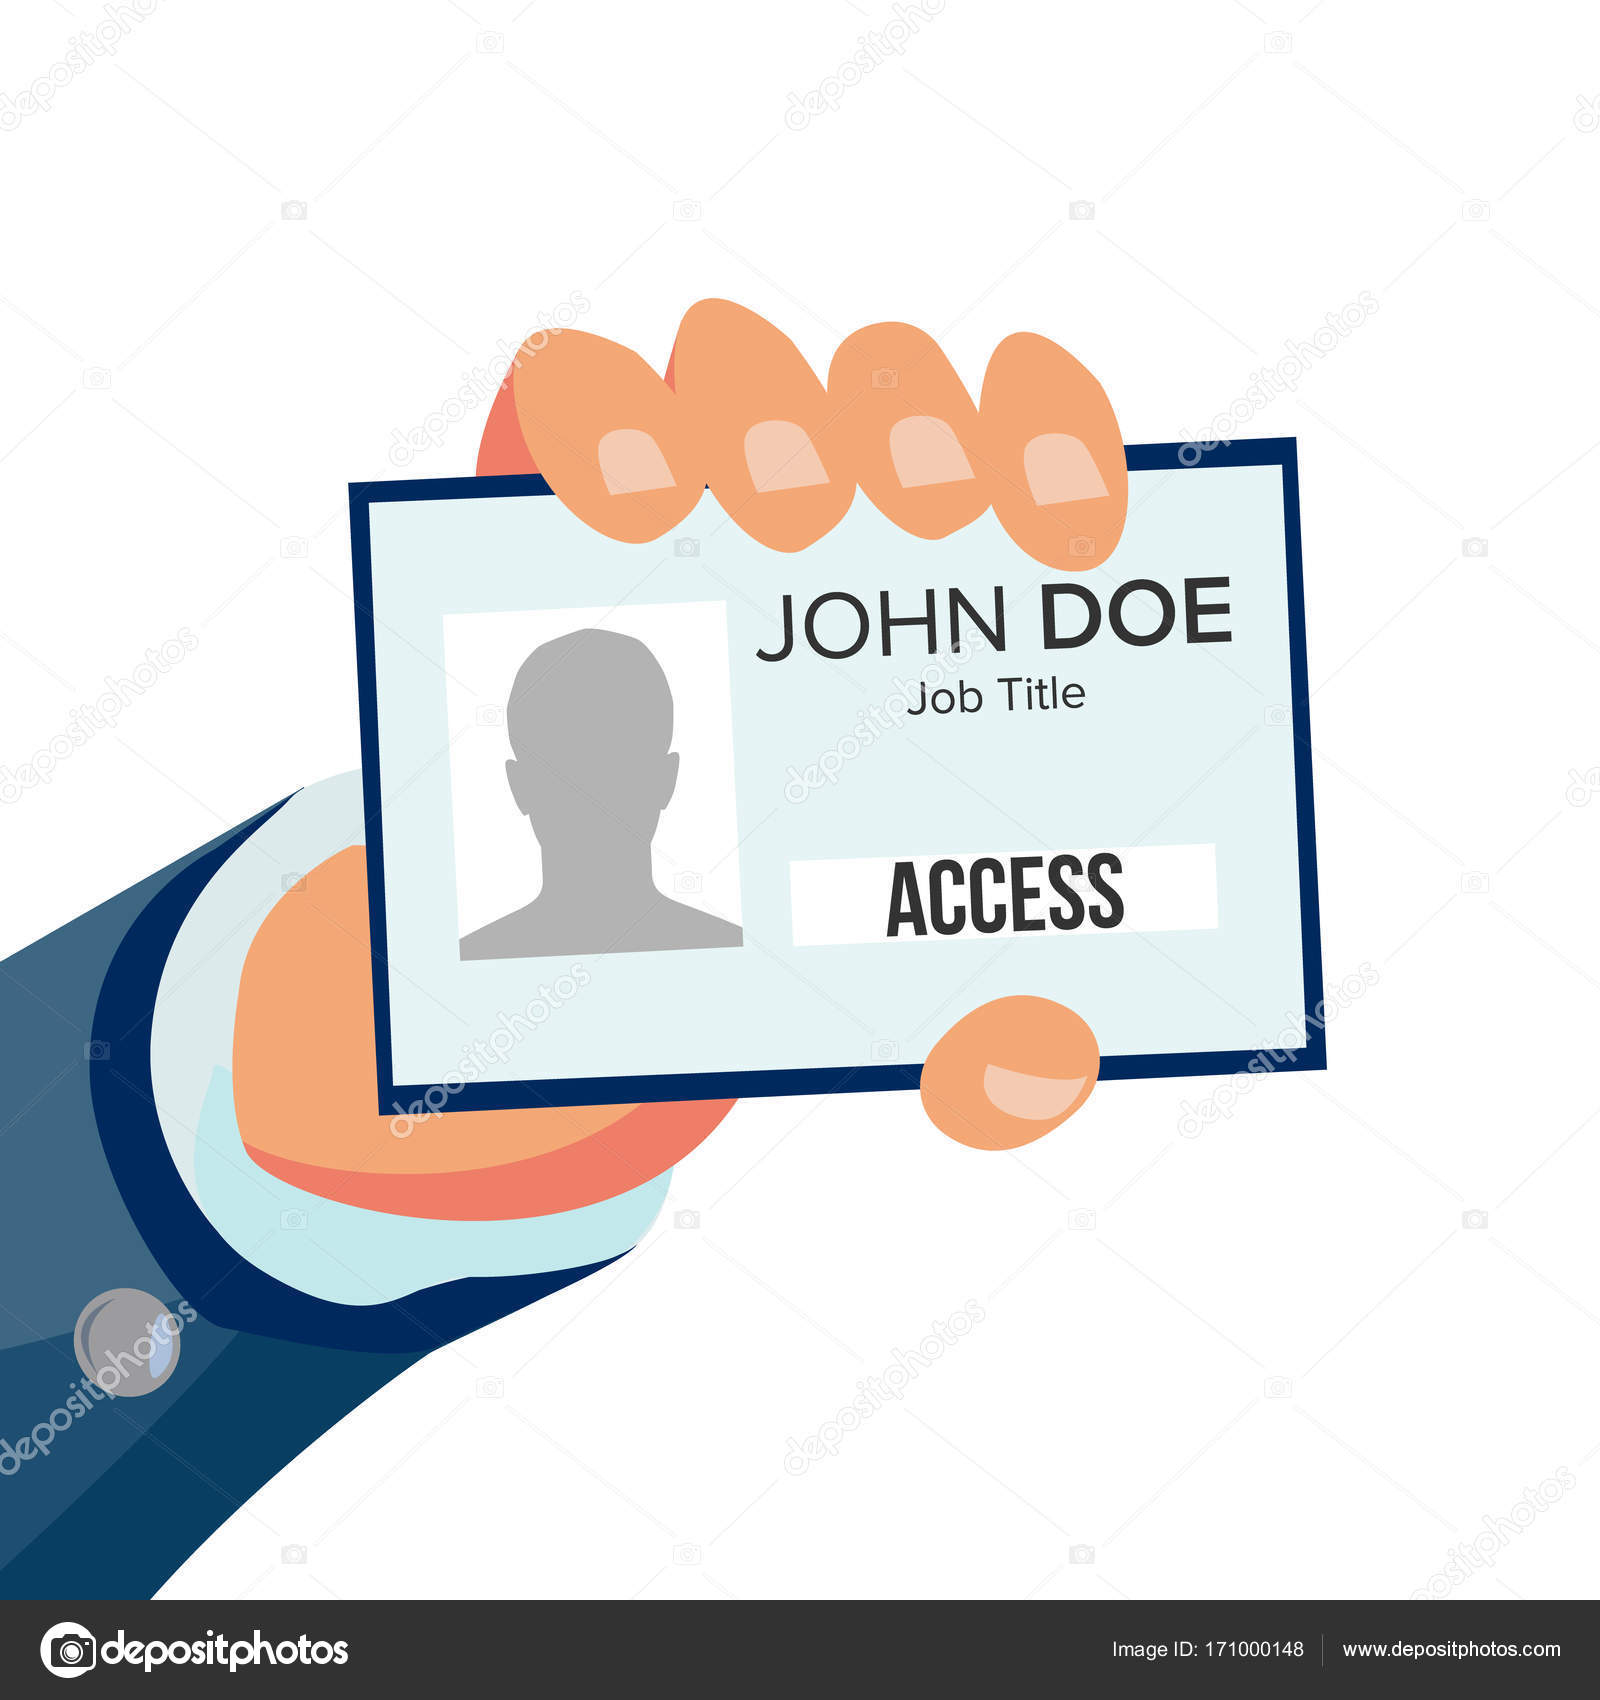 Hand Holding Id Card Vector. Identity Card With Photo And Job Title ...